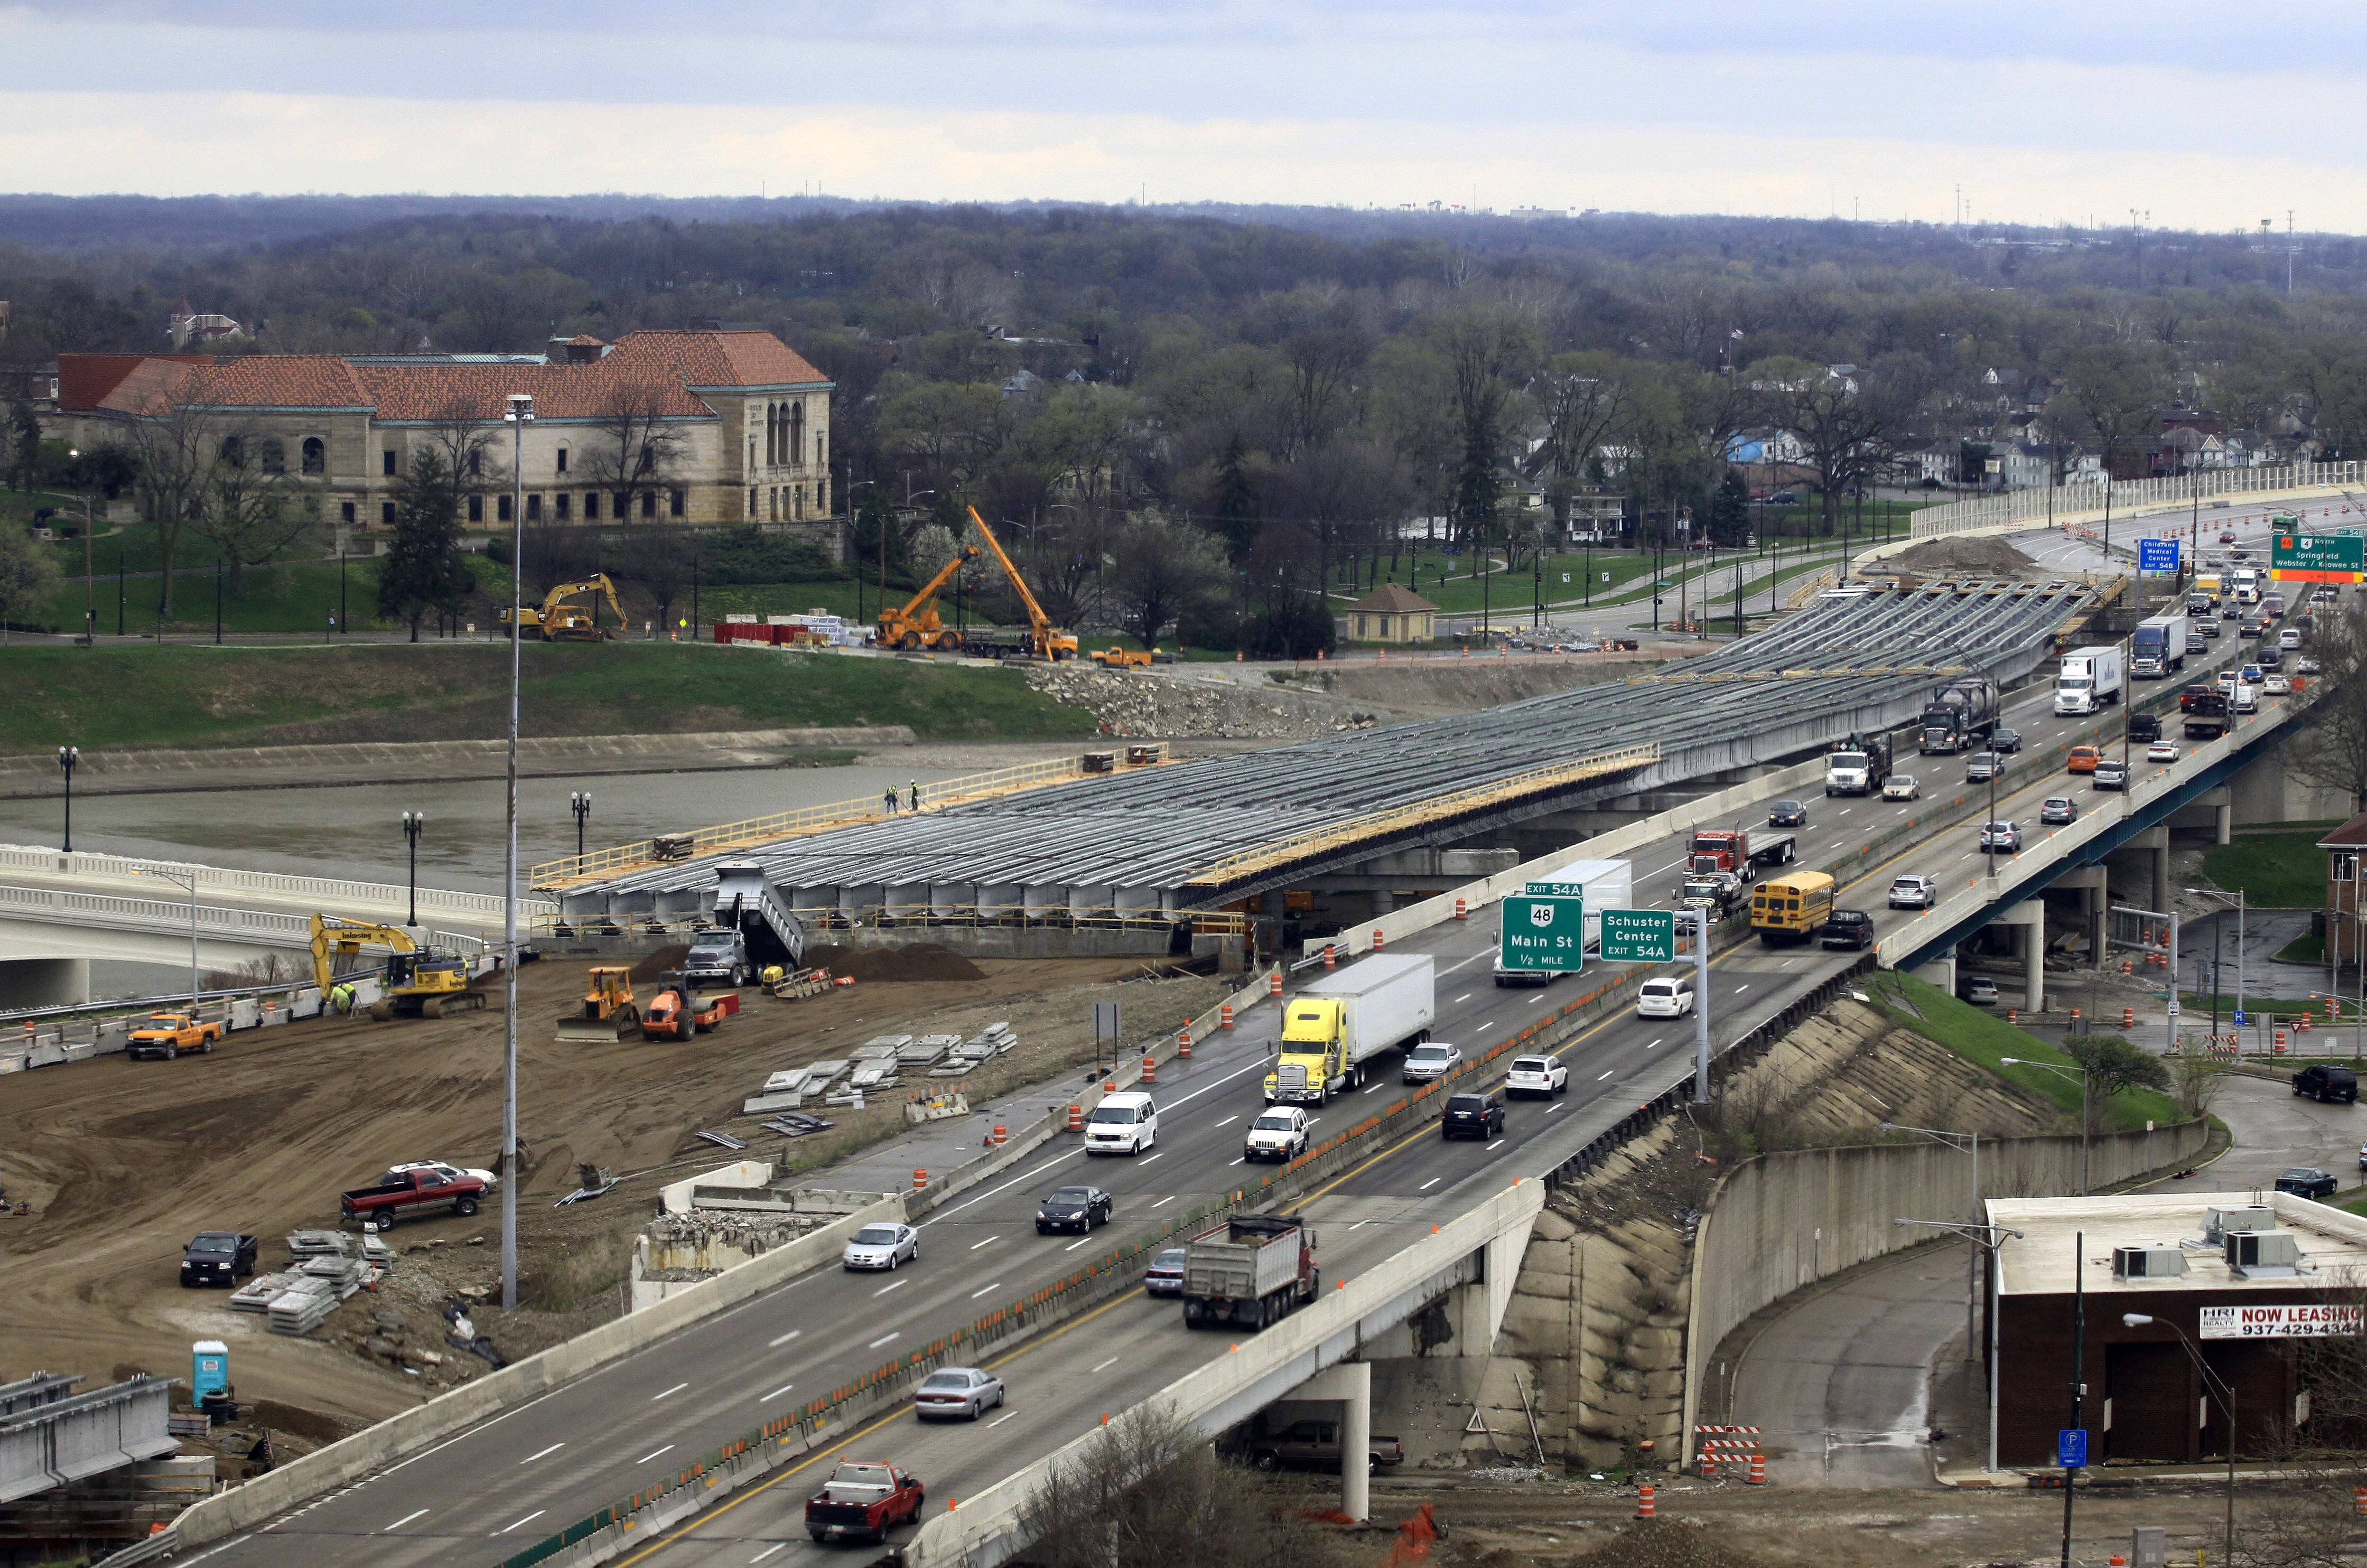 This is a section of the I-75 Phase II modernization project under way in Dayton, Ohio. The Senate passed legislation on Tuesday to keep federal highway money flowing to states, with just three days left before the government plans to start slowing down payments. The House passed a $10.8 billion bill last week.